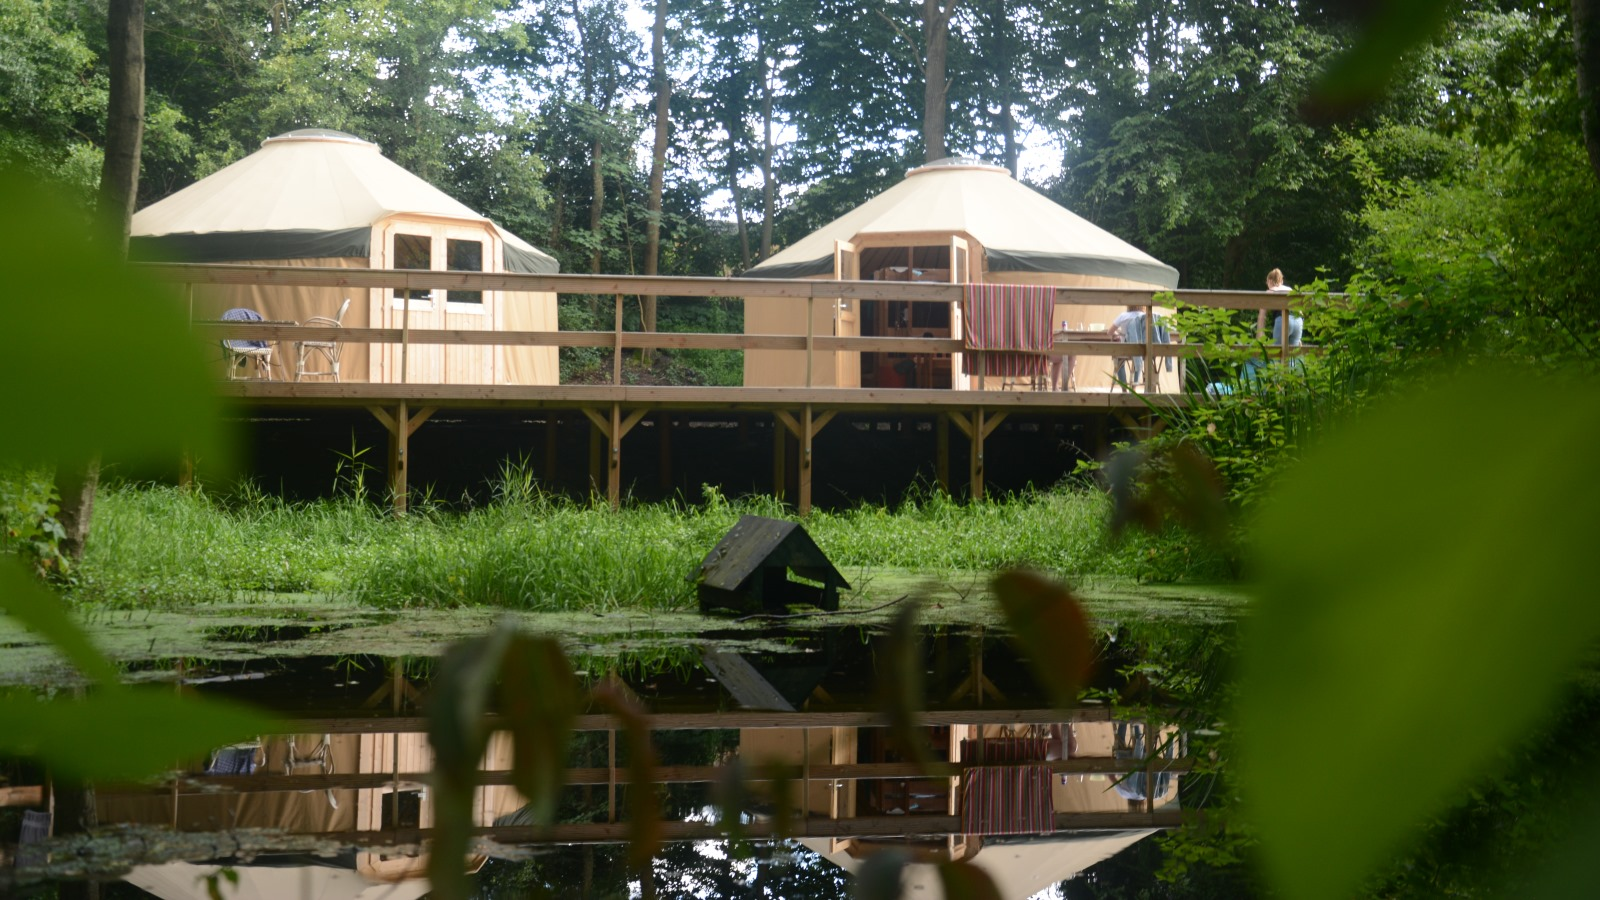 Yurts - tucked away at the source pond